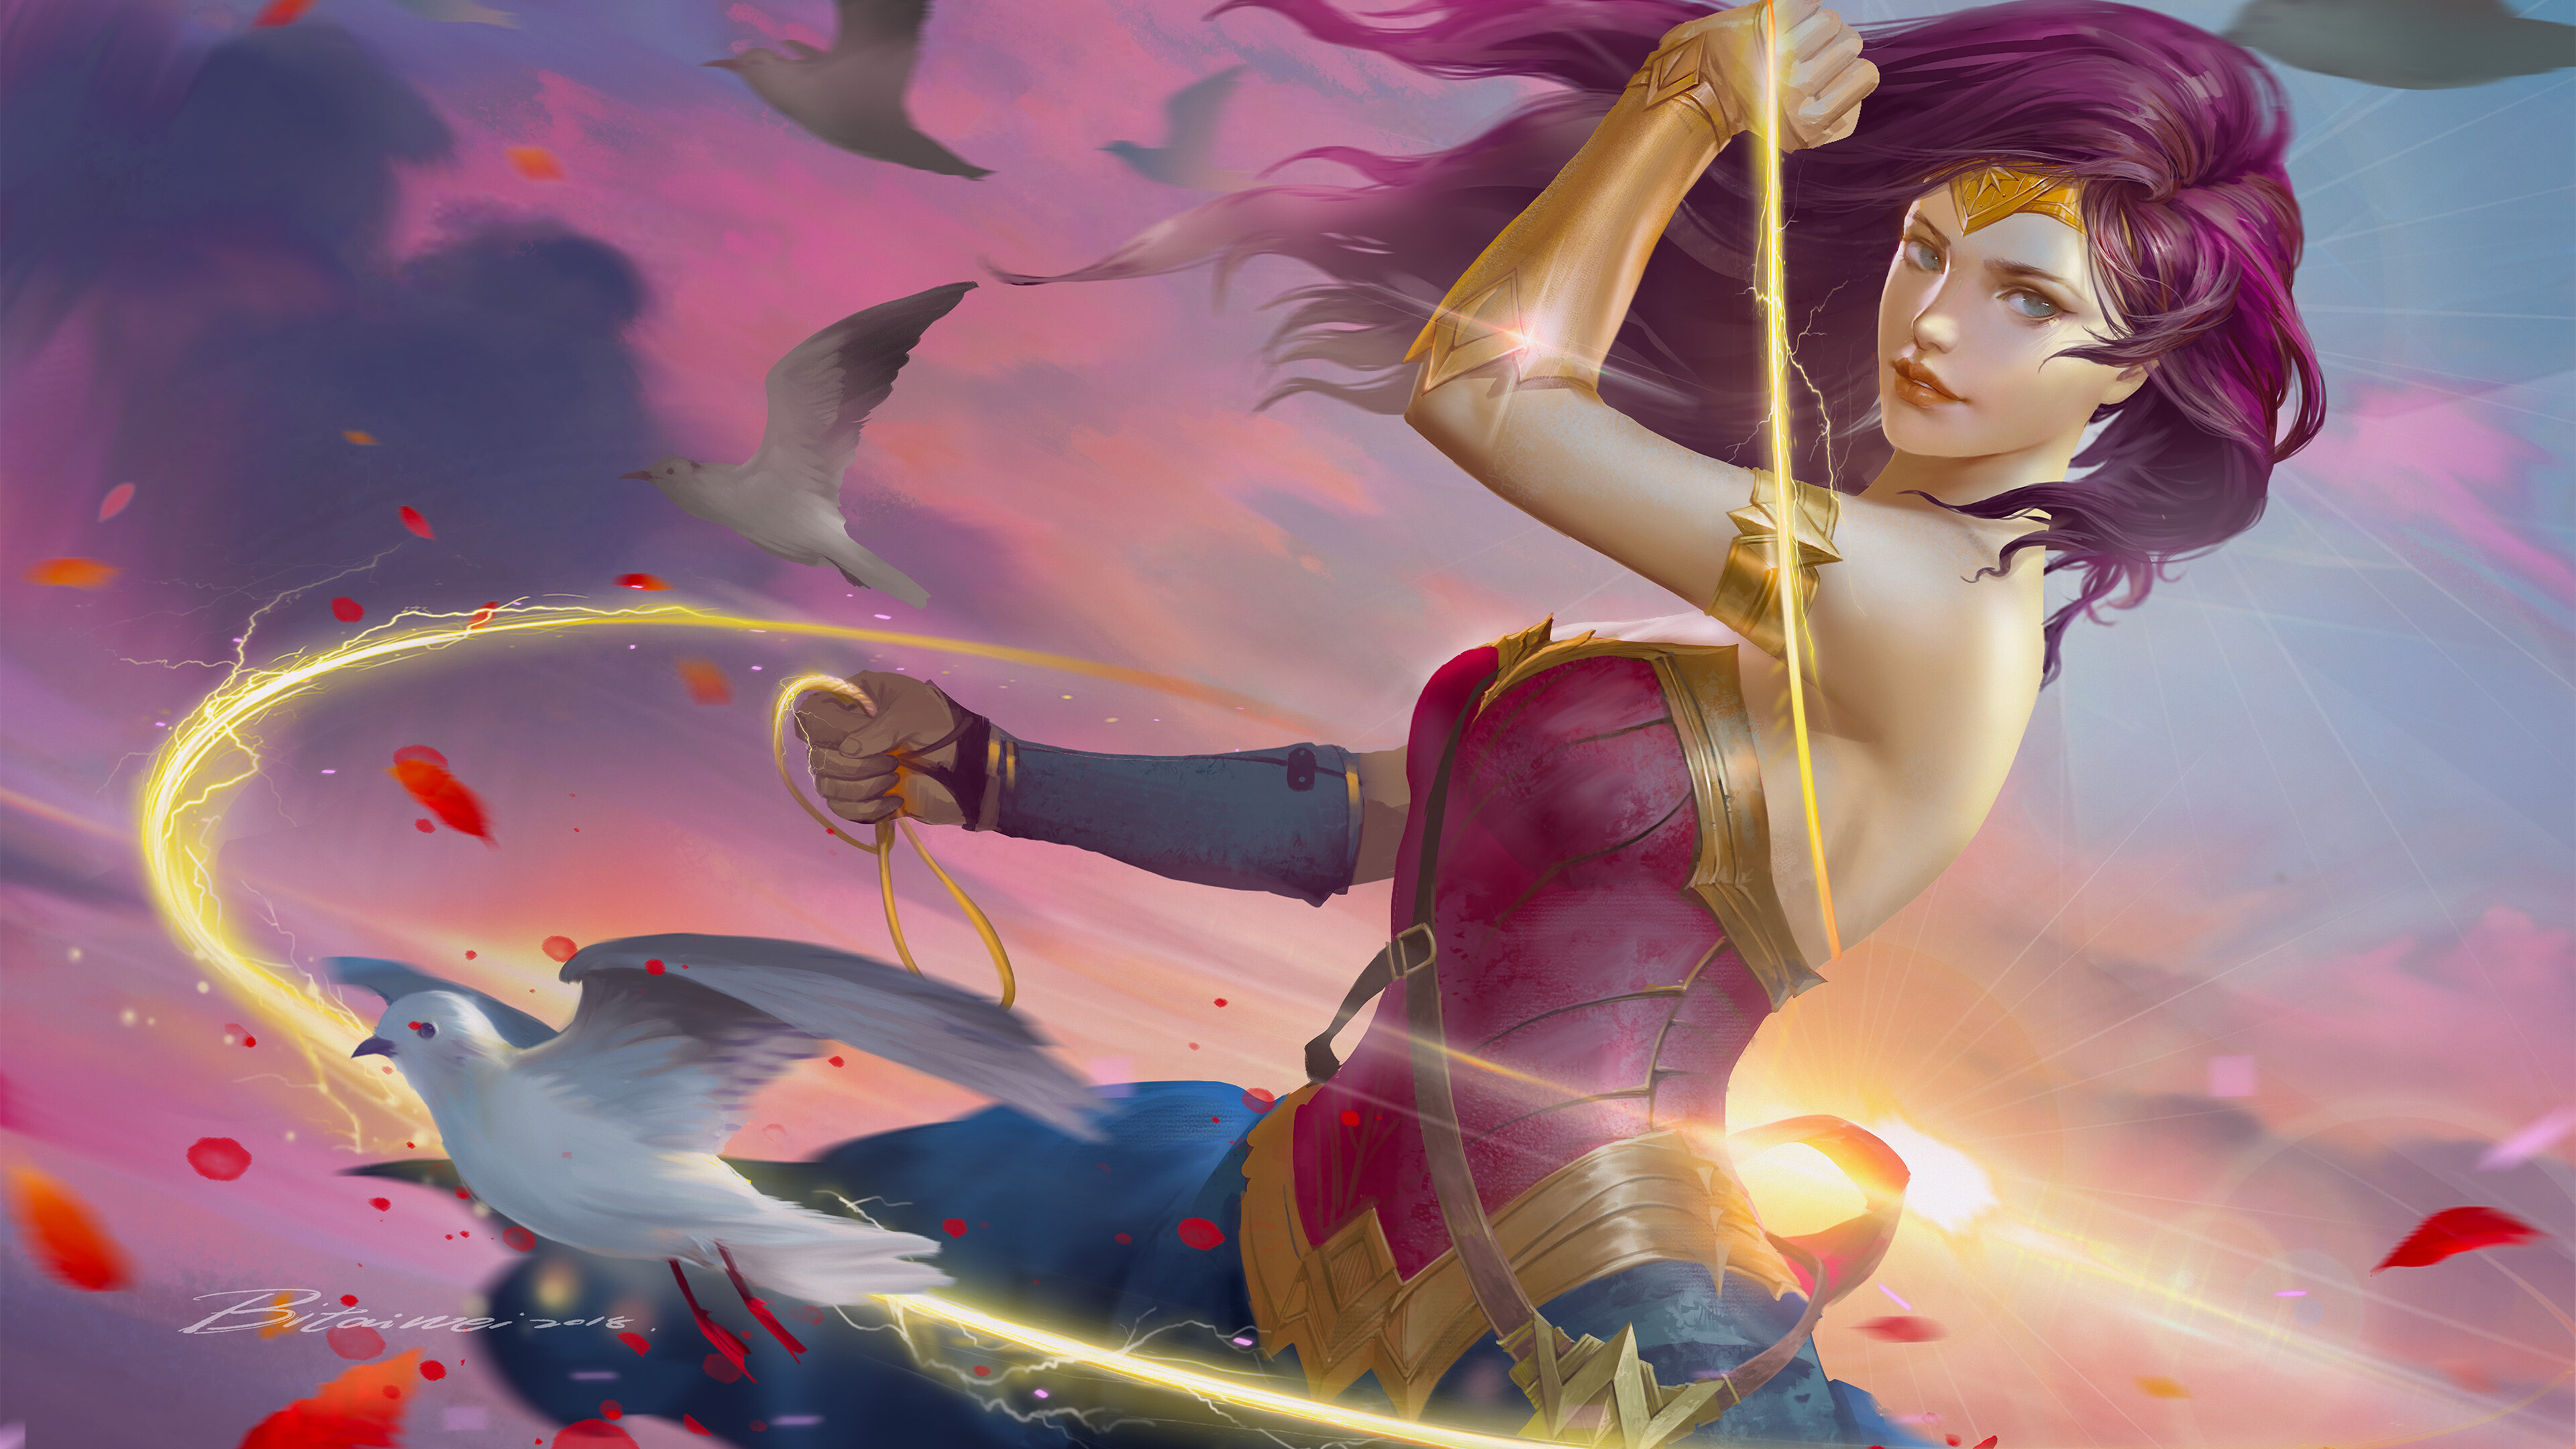 wonder-woman-colorful-art-4k-jj.jpg